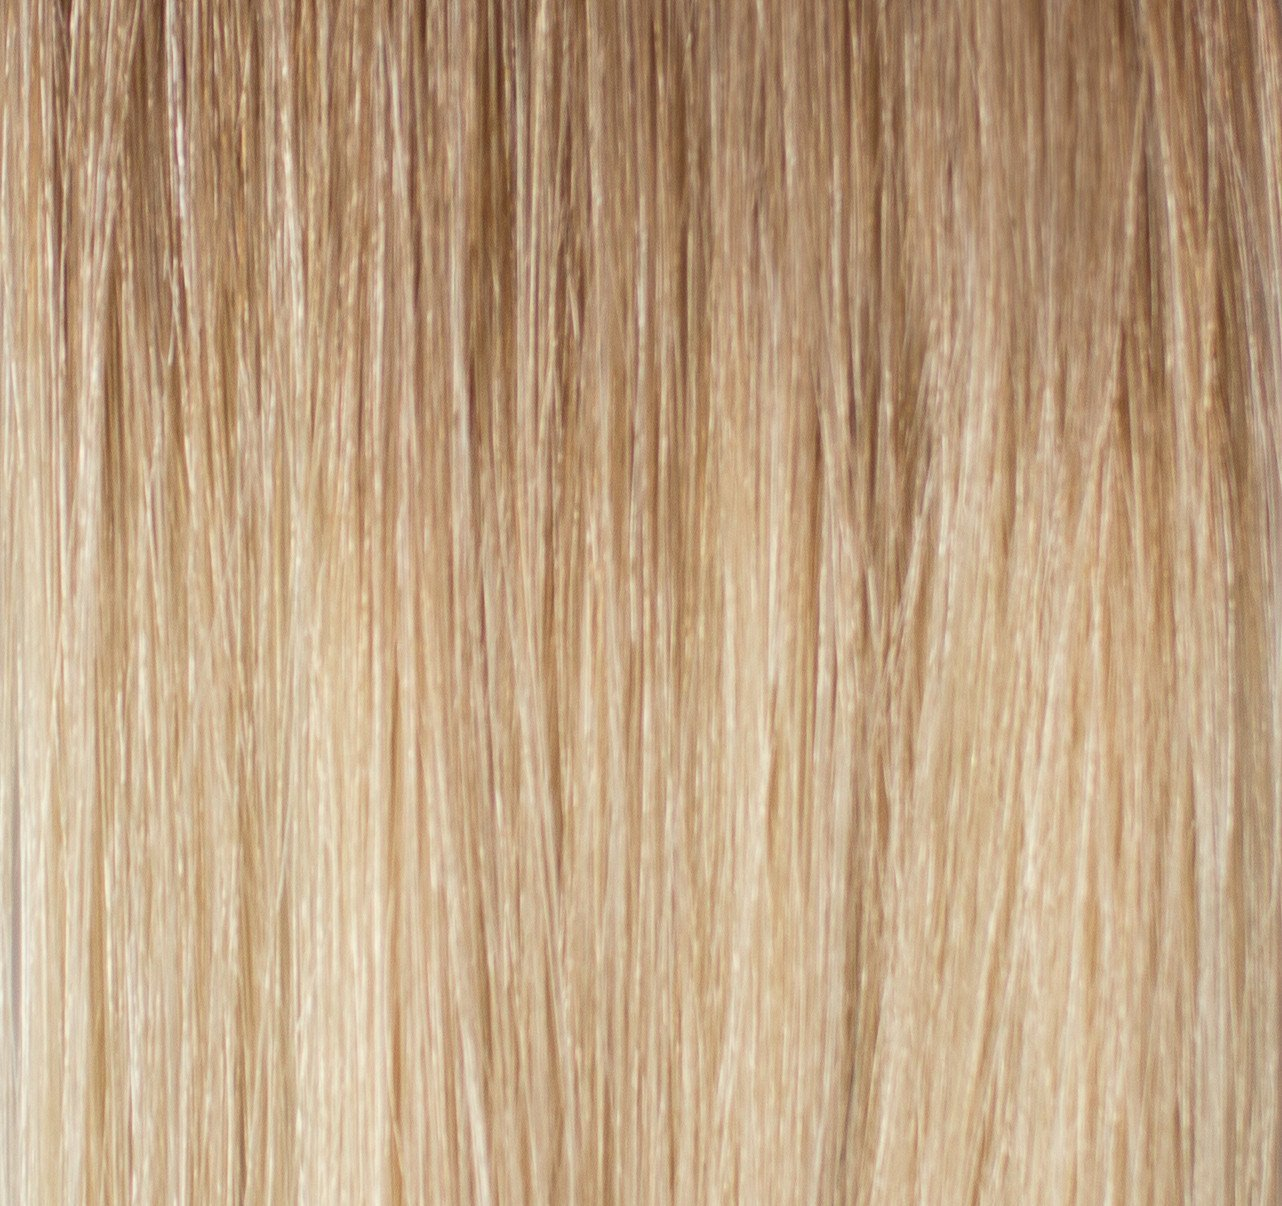 Machine_Sewn_Weft - Laced Hair Machine Sewn Weft Extensions Ombré #8/613